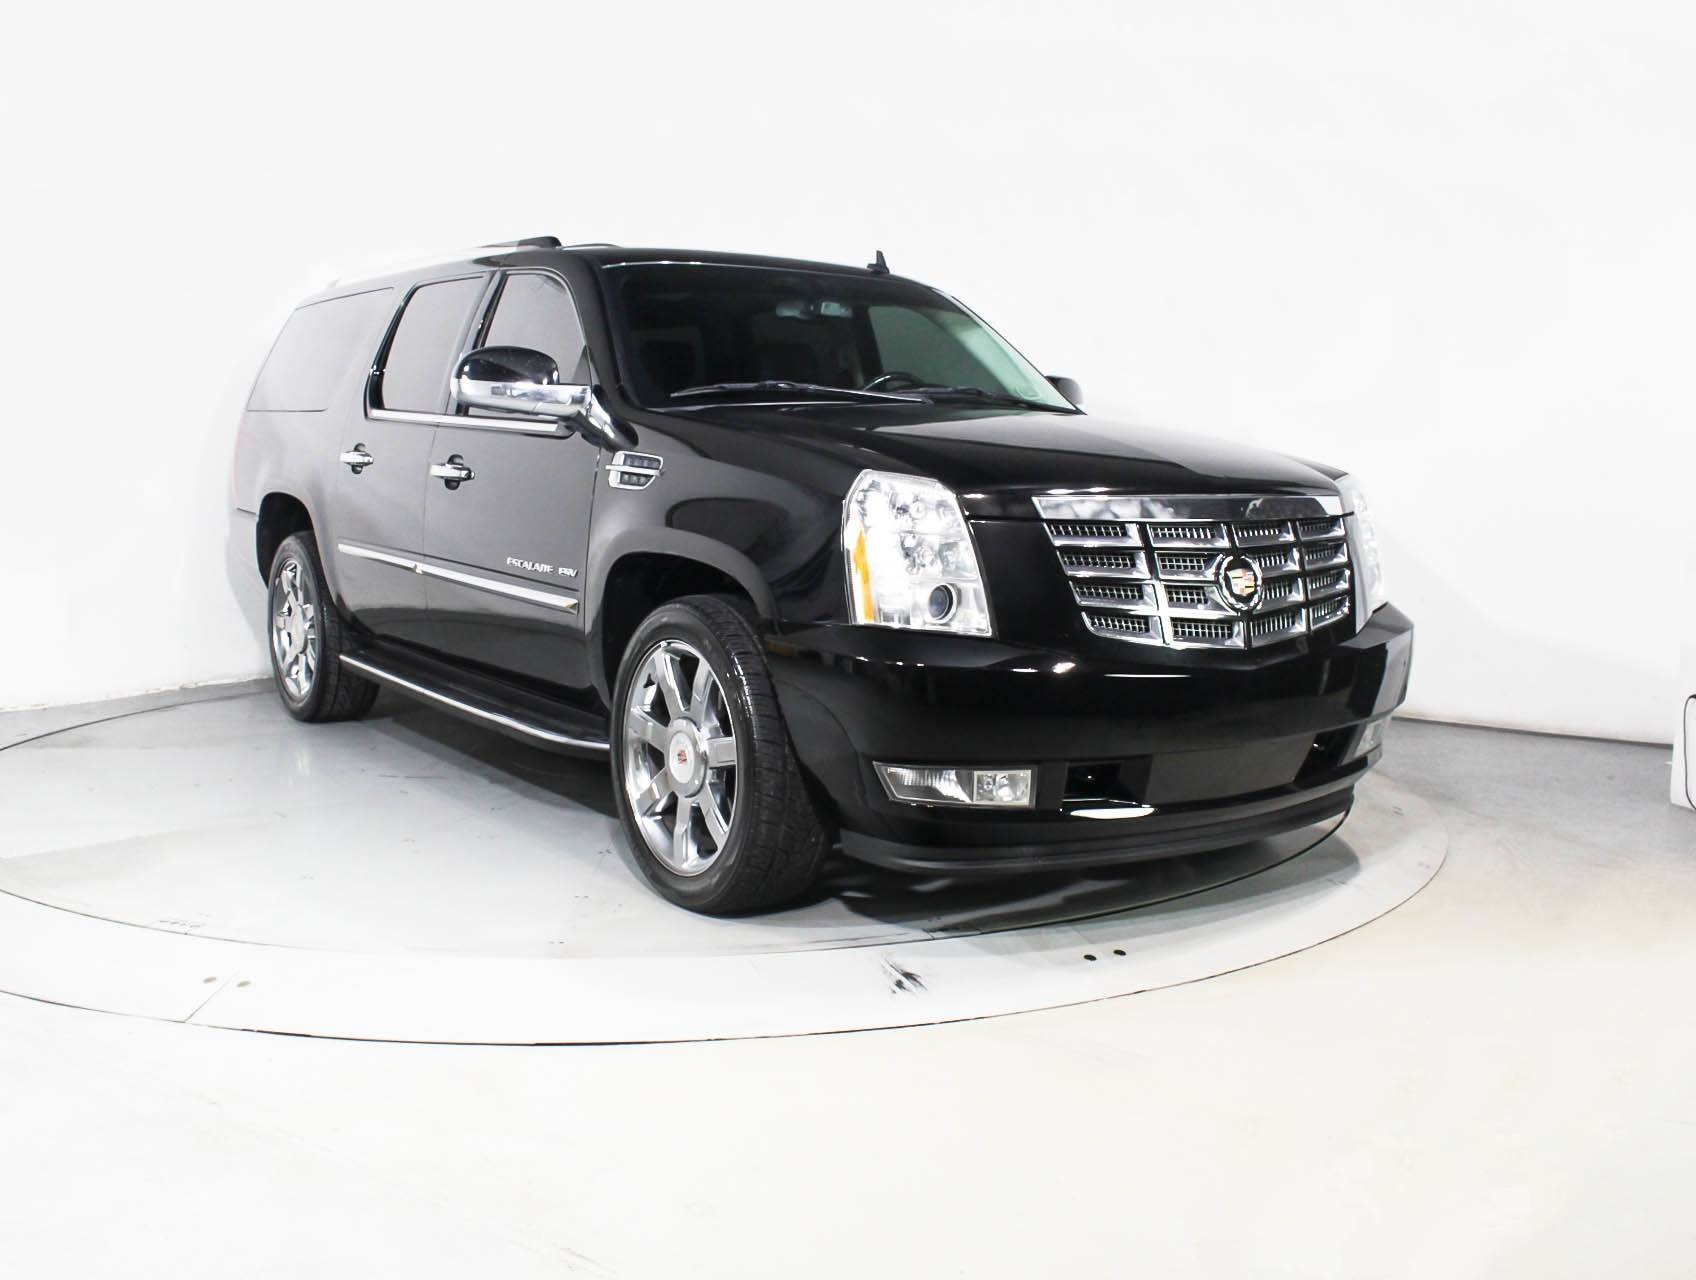 Used 2013 CADILLAC ESCALADE ESV LUXURY SUV for sale in WEST PALM FL